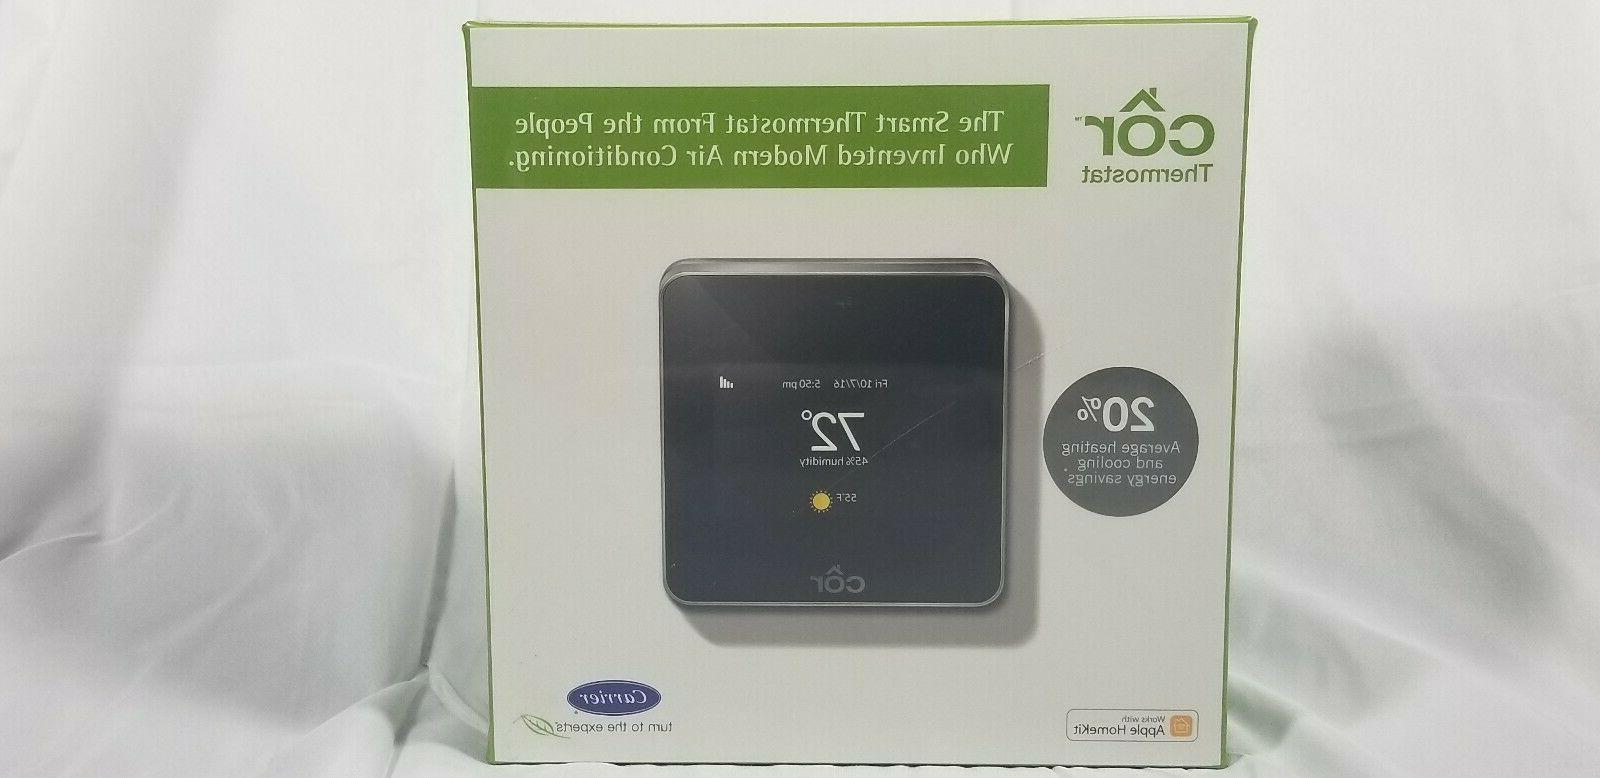 CARRIER COR TP-WEMO1-A SMART WIFI THERMOSTAT 7 DAY PROGRAMMA